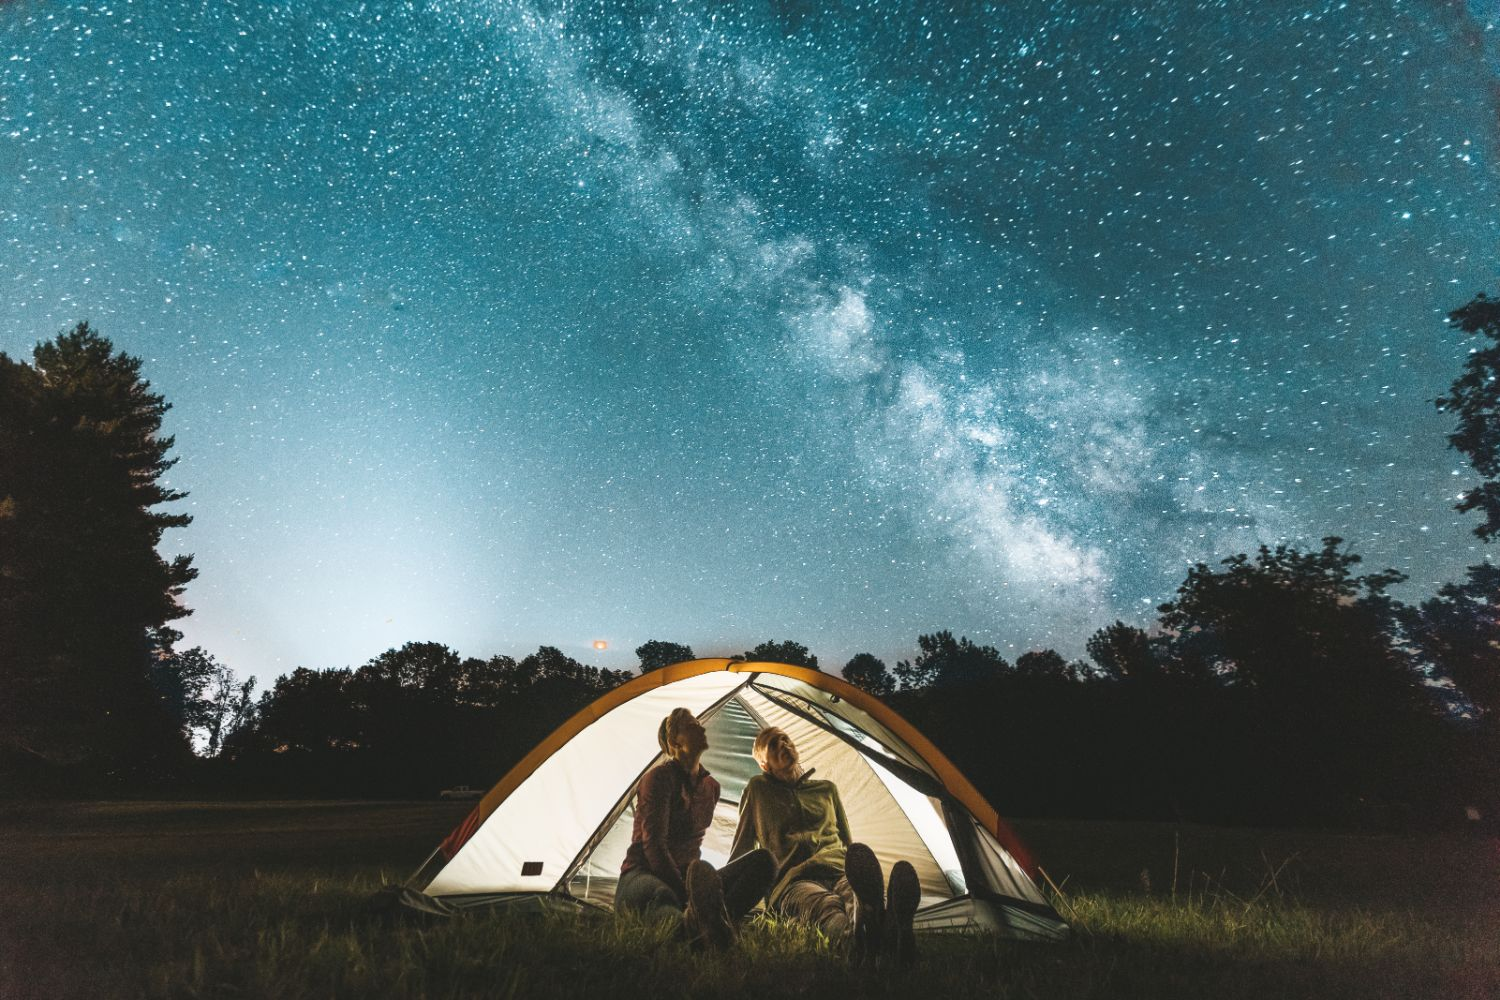 couple-tent-milkyway-stargaze-night-sky